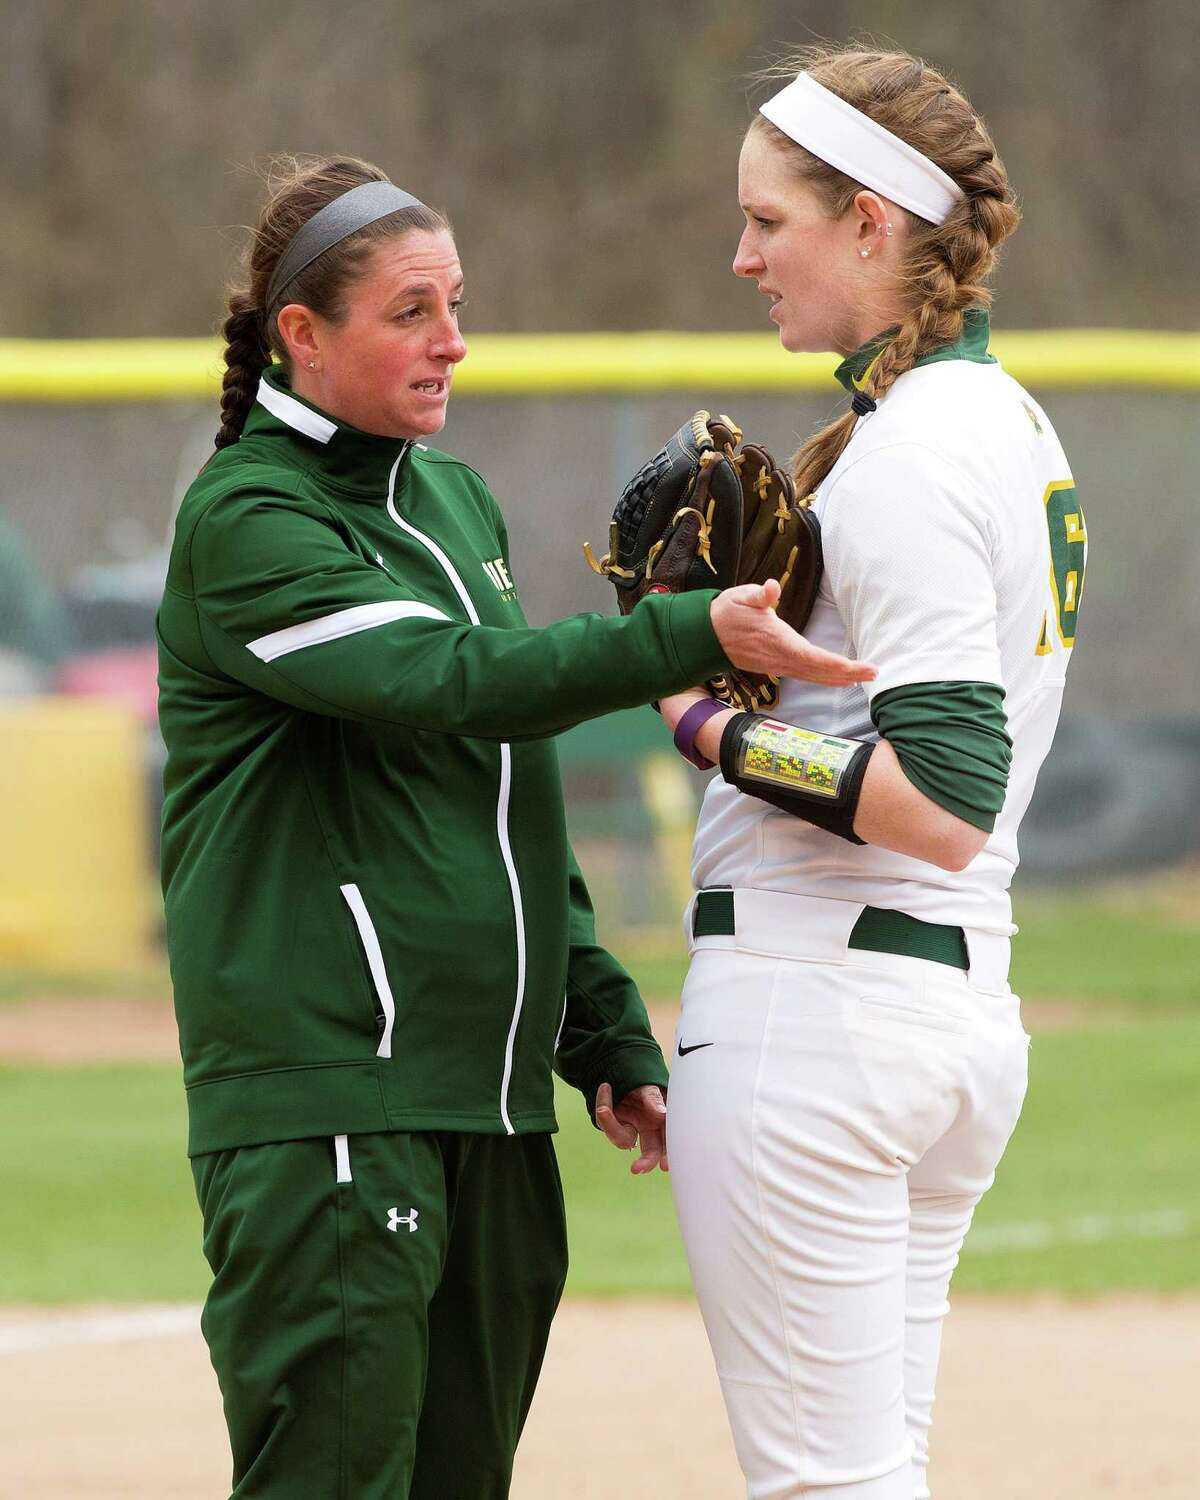 Siena softball coach Casey Bump, left, was elevated to the top spot after serving as the Saints' pitching coach for seven years. (Courtesy of Siena Athletics)